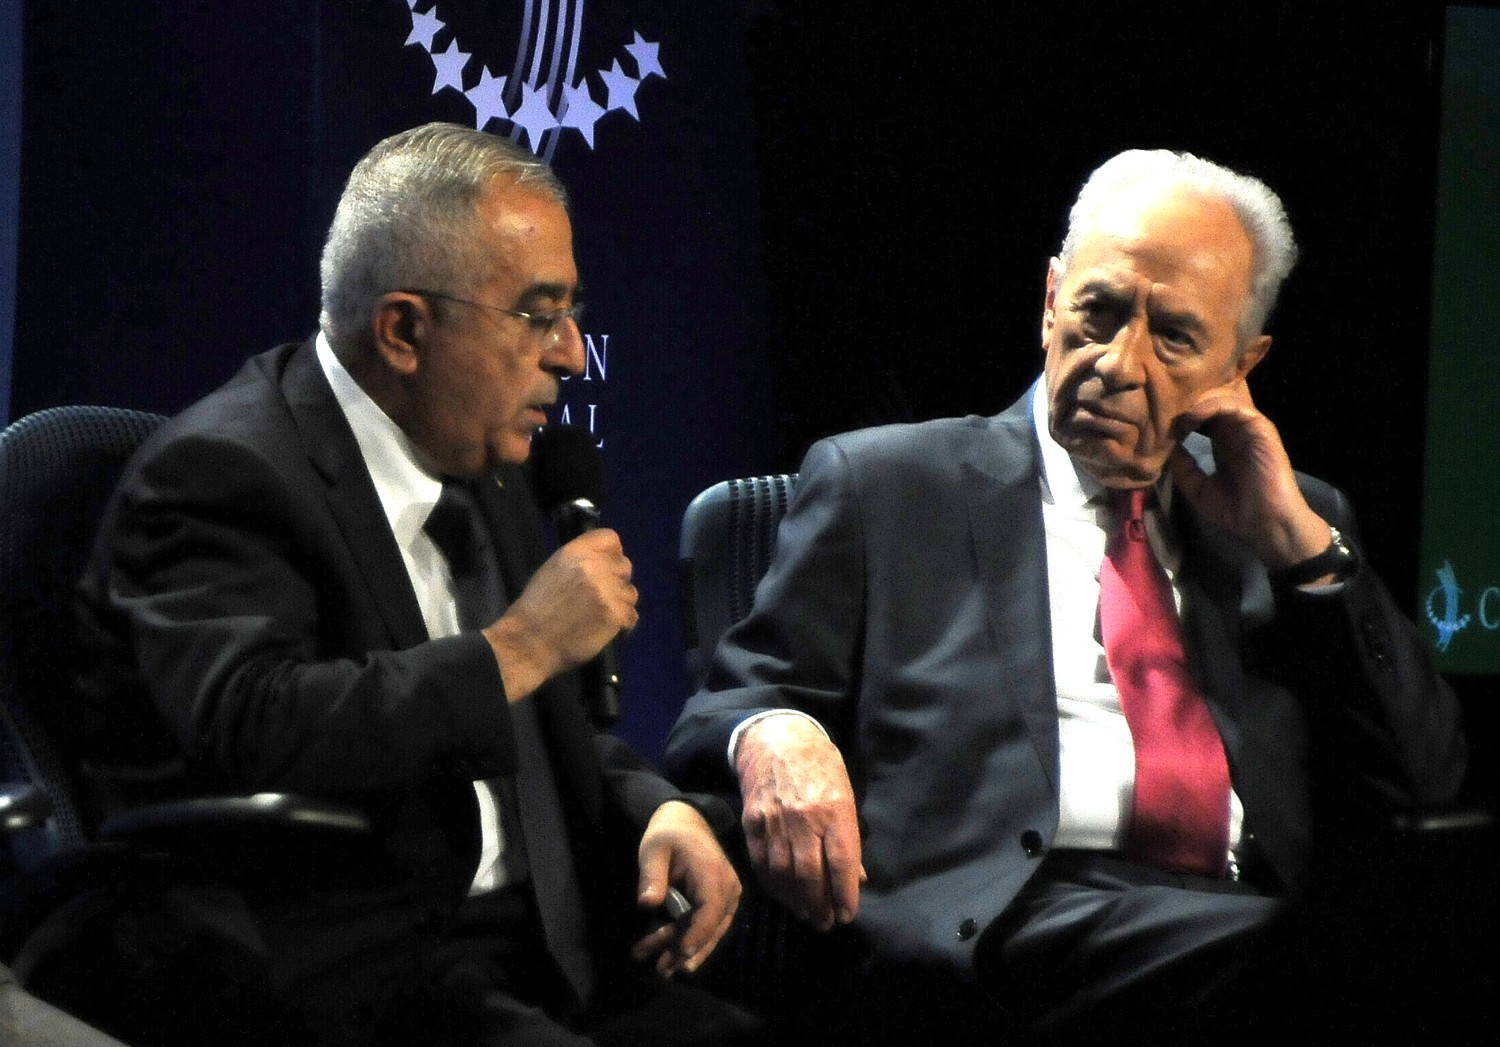 """""""I think peace would be better for everyone,"""" Palestine National Authority Prime Minister Salam Fayyad tells Israel President Shimon Peres at the 2010 Clinton Global Initiative. """"People throughout the region could interact more freely – in peace, security."""" © 2016 Karen Rubin/news-photos-features.com"""